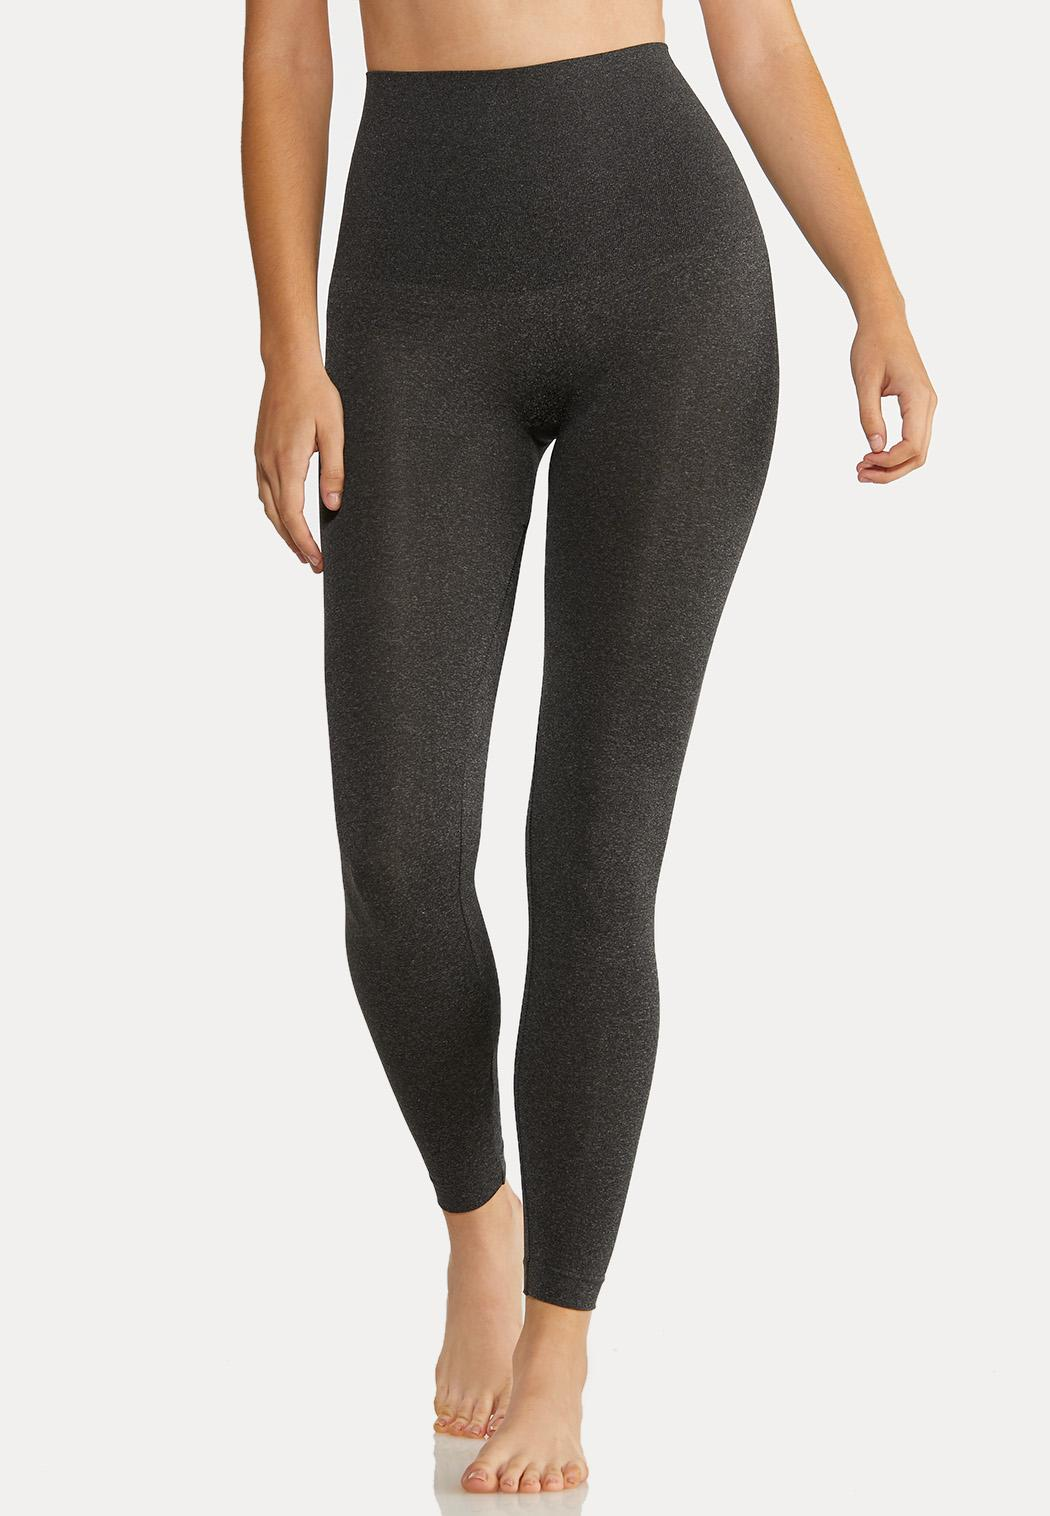 The Perfect Charcoal Leggings